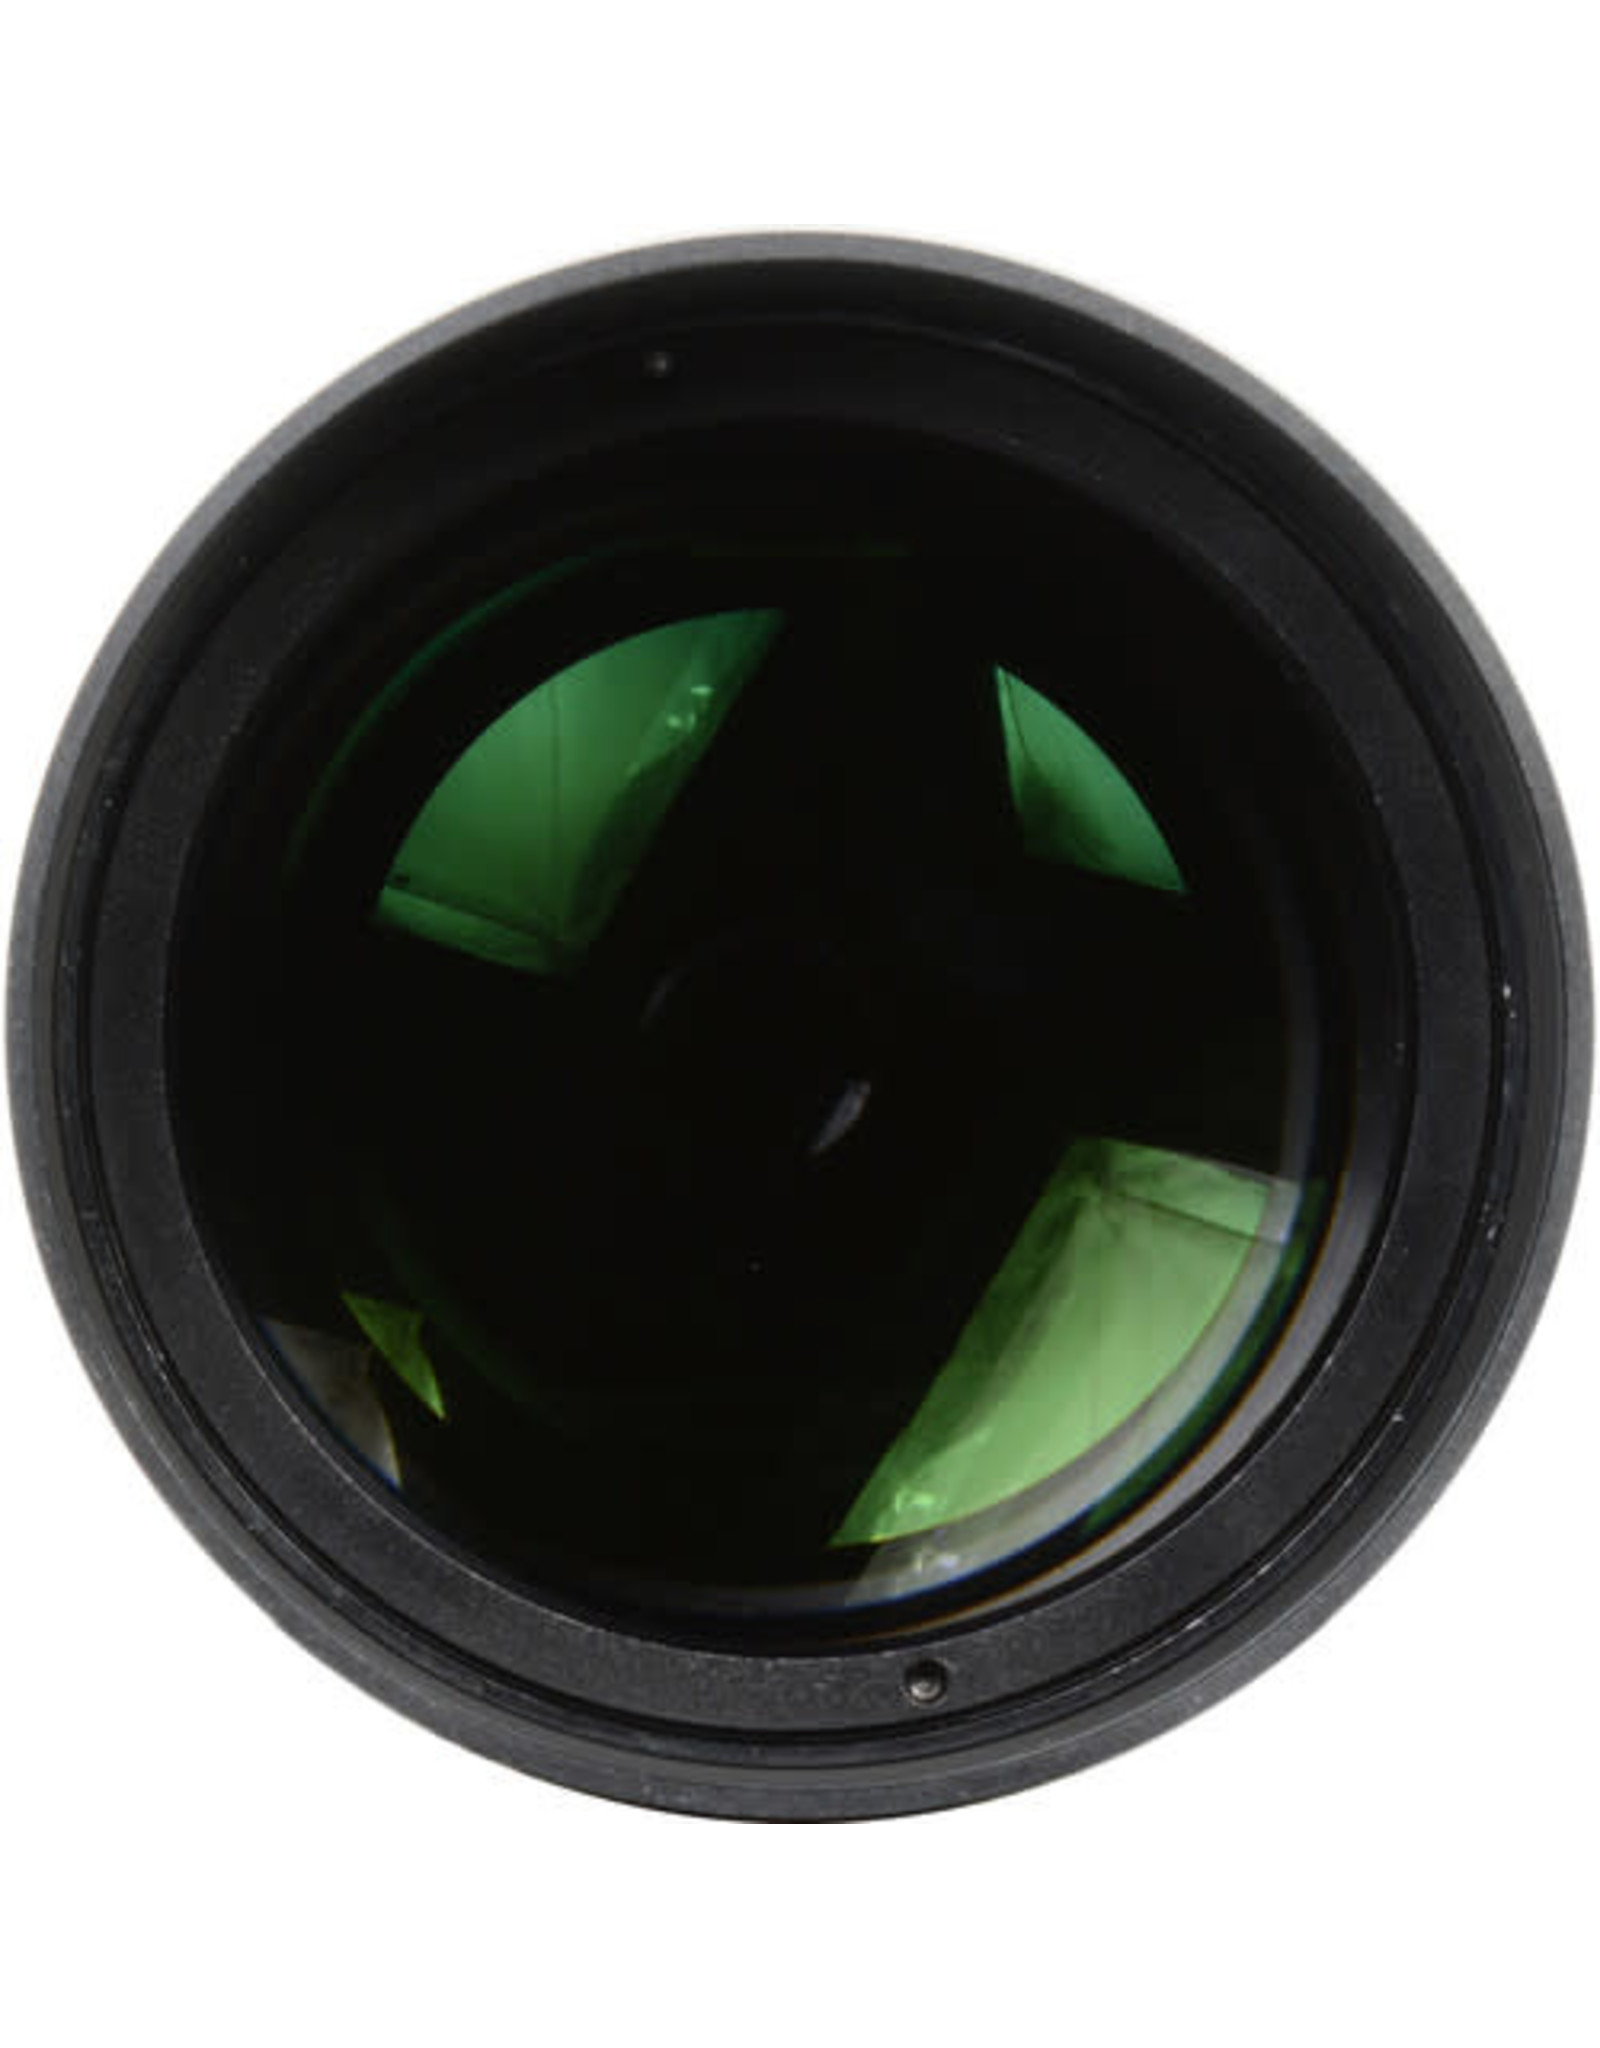 Bower 650-1300mm f/8-16 Manual Focus Lens for T Mount  (OPEN BOX)